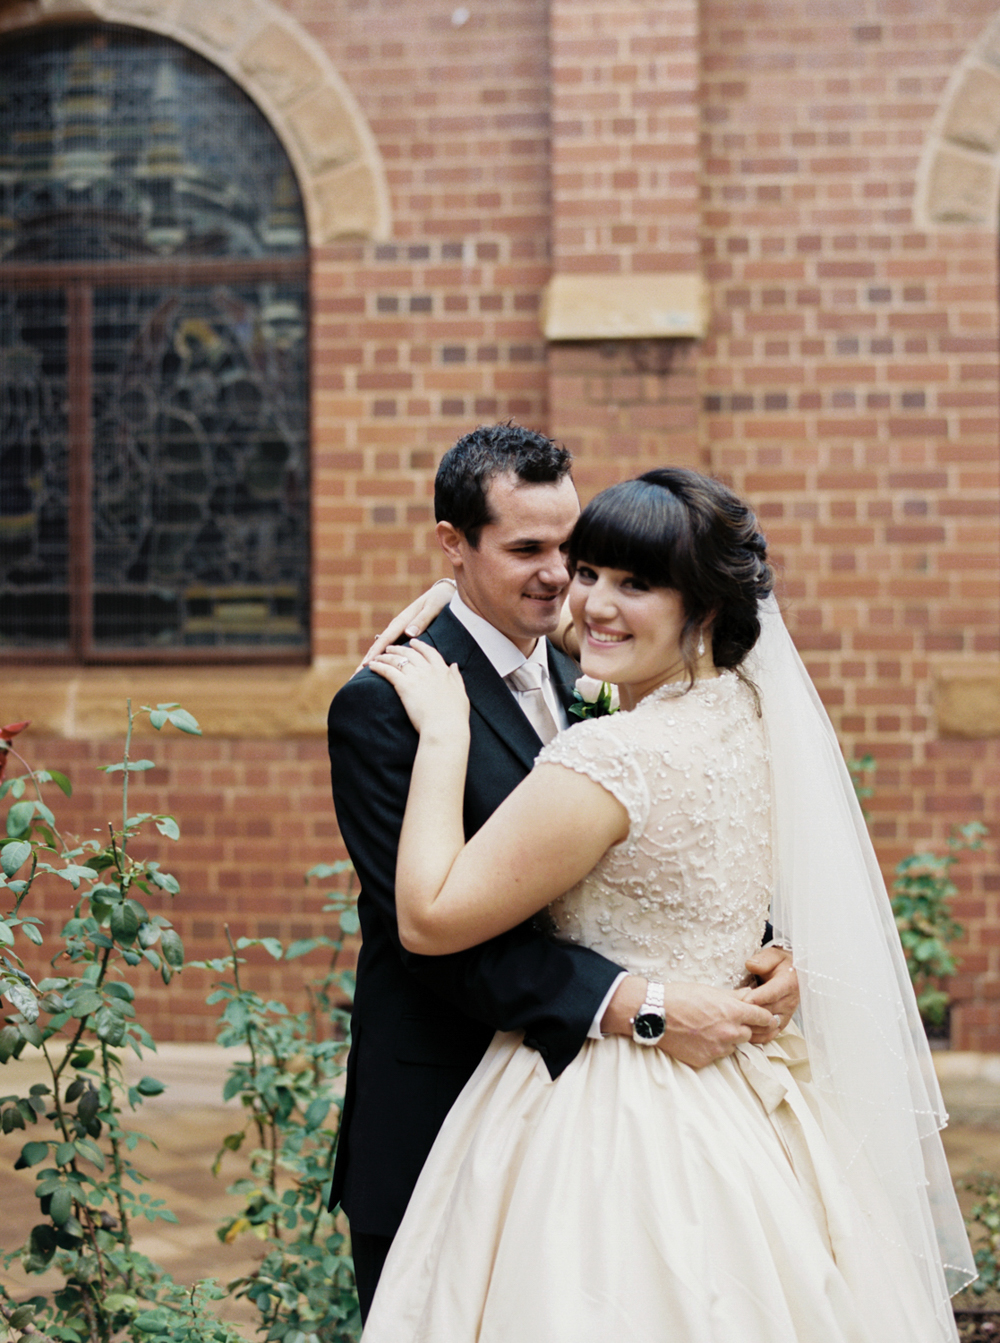 00041- Dubbo NSW Wedding Photographer Sheri McMahon.jpg